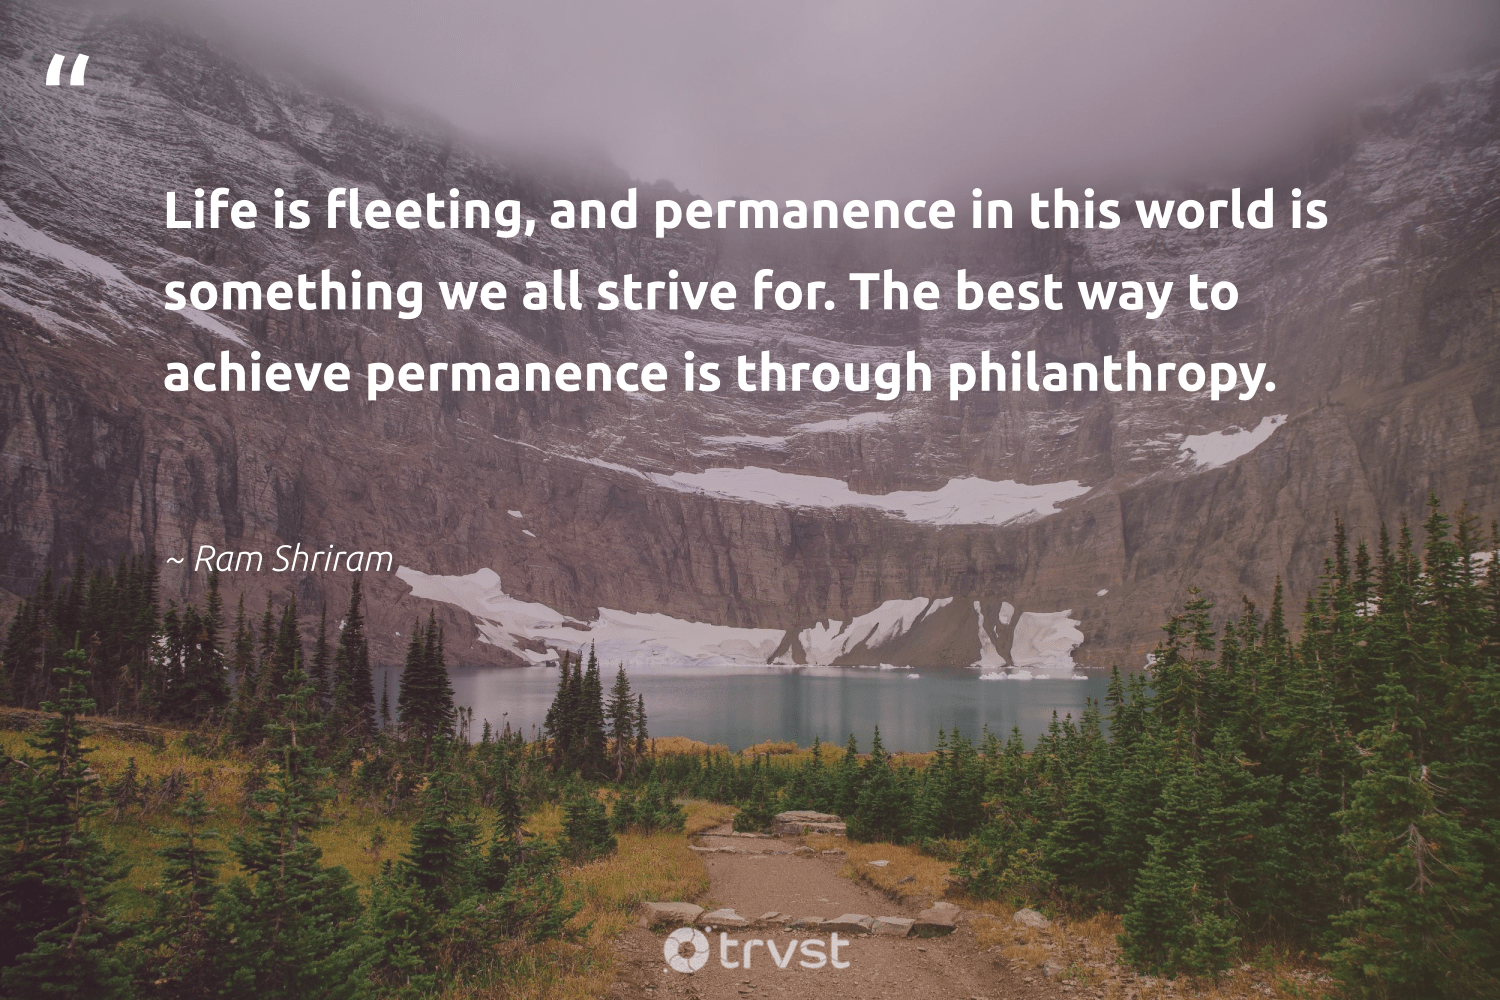 """Life is fleeting, and permanence in this world is something we all strive for. The best way to achieve permanence is through philanthropy.""  - Ram Shriram #trvst #quotes #philanthropy #philanthropic #togetherwecan #giveforthefuture #collectiveaction #changemakers #itscooltobekind #dotherightthing #planetearthfirst #beinspired"